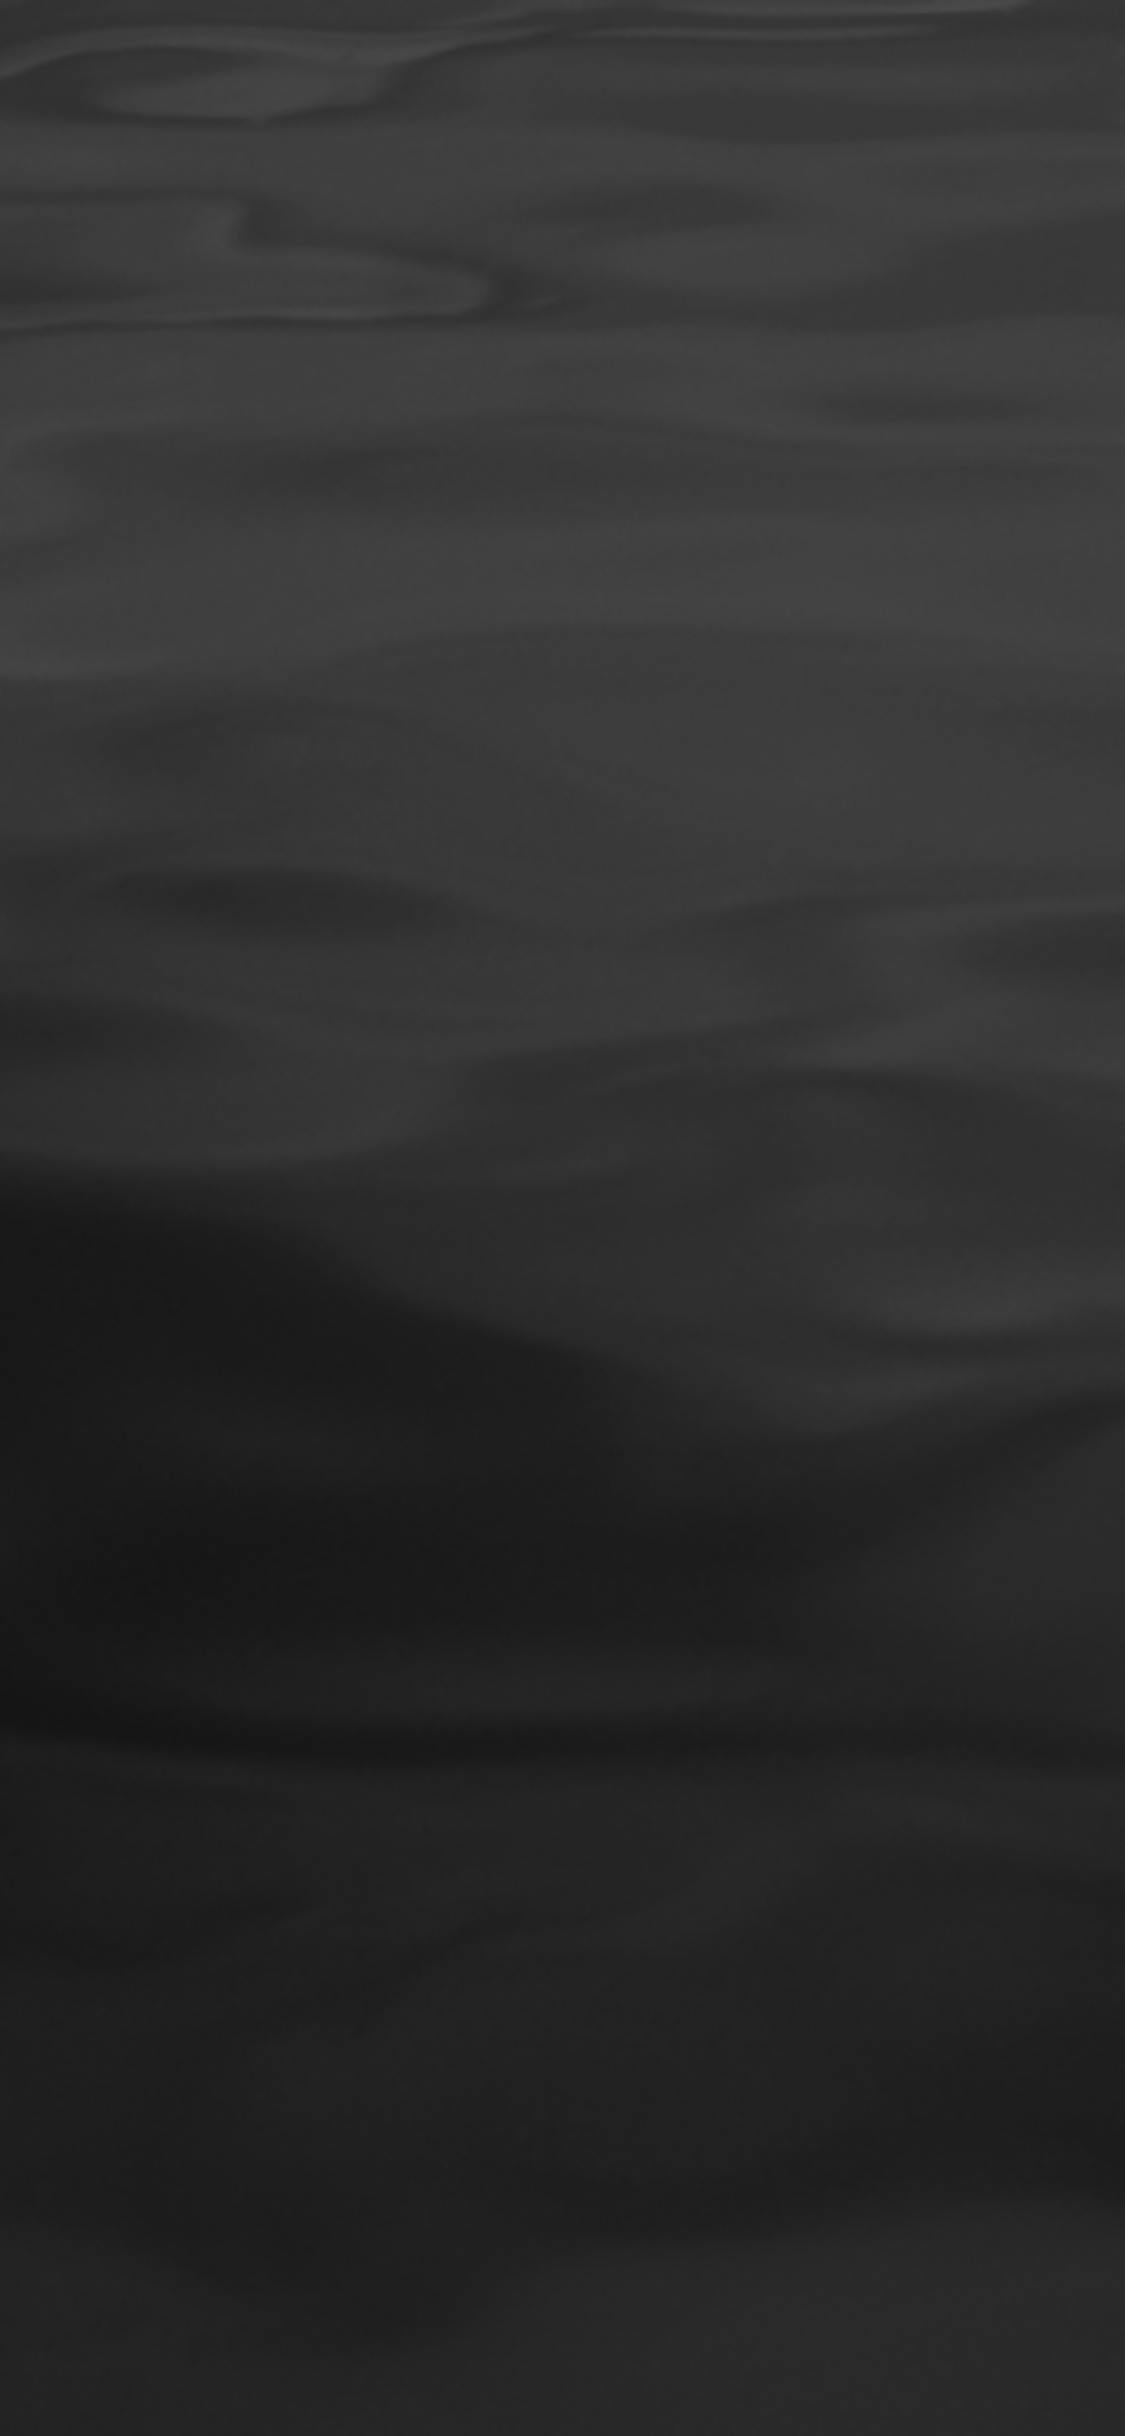 iPhoneXpapers.com-Apple-iPhone-wallpaper-vj67-calm-water-bw-dark-wave-pattern